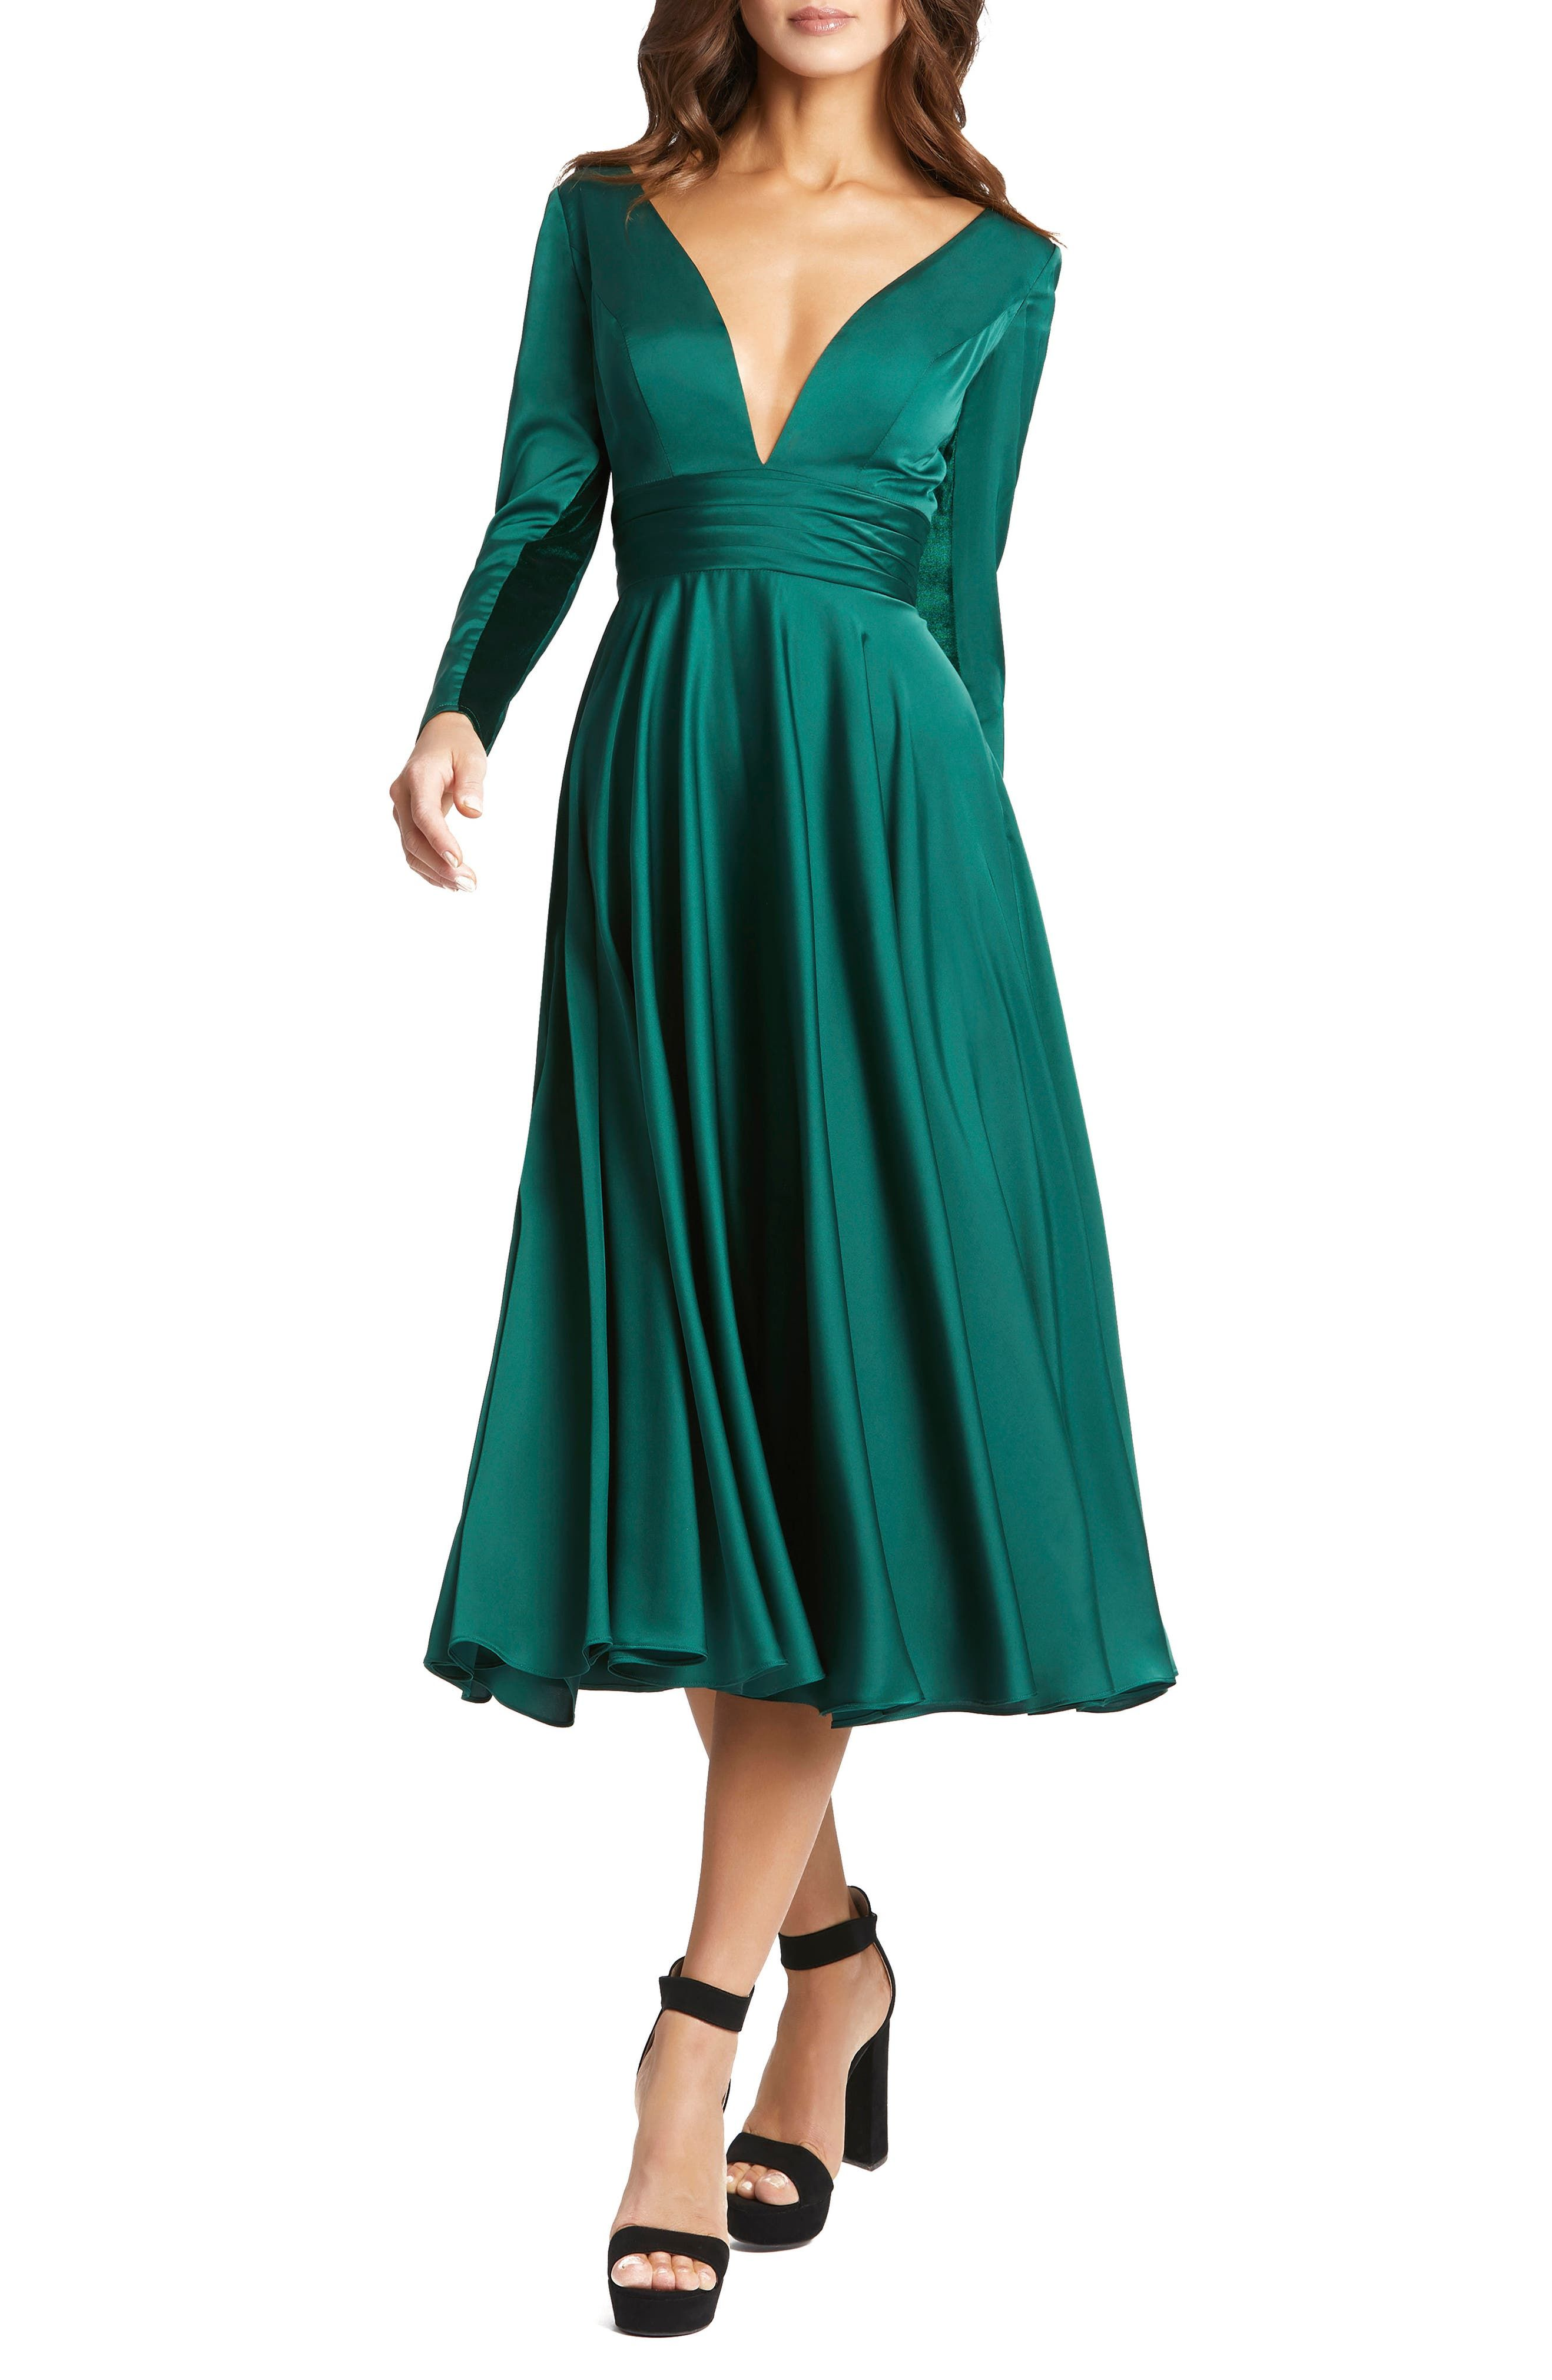 Mac Duggal Long Sleeve Plunge Neck Cocktail Midi Dress Nordstrom In 2021 Midi Cocktail Dress Cocktail Dresses With Sleeves Satin Midi Dress [ 4042 x 2636 Pixel ]